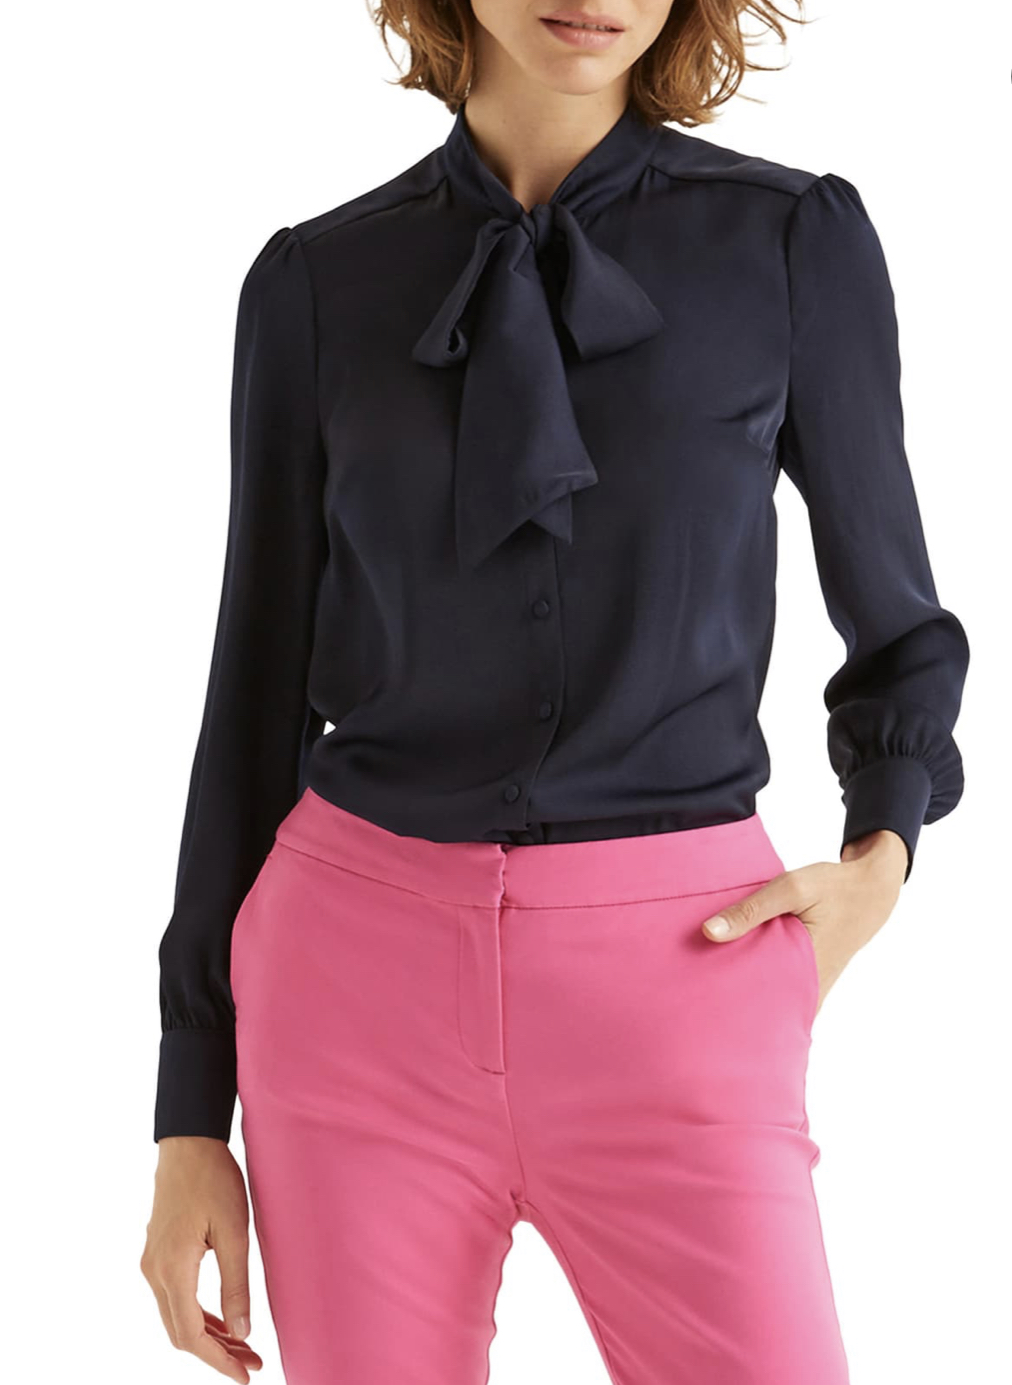 Boden at Nordstrom Thelma tie-neck blouse, $98